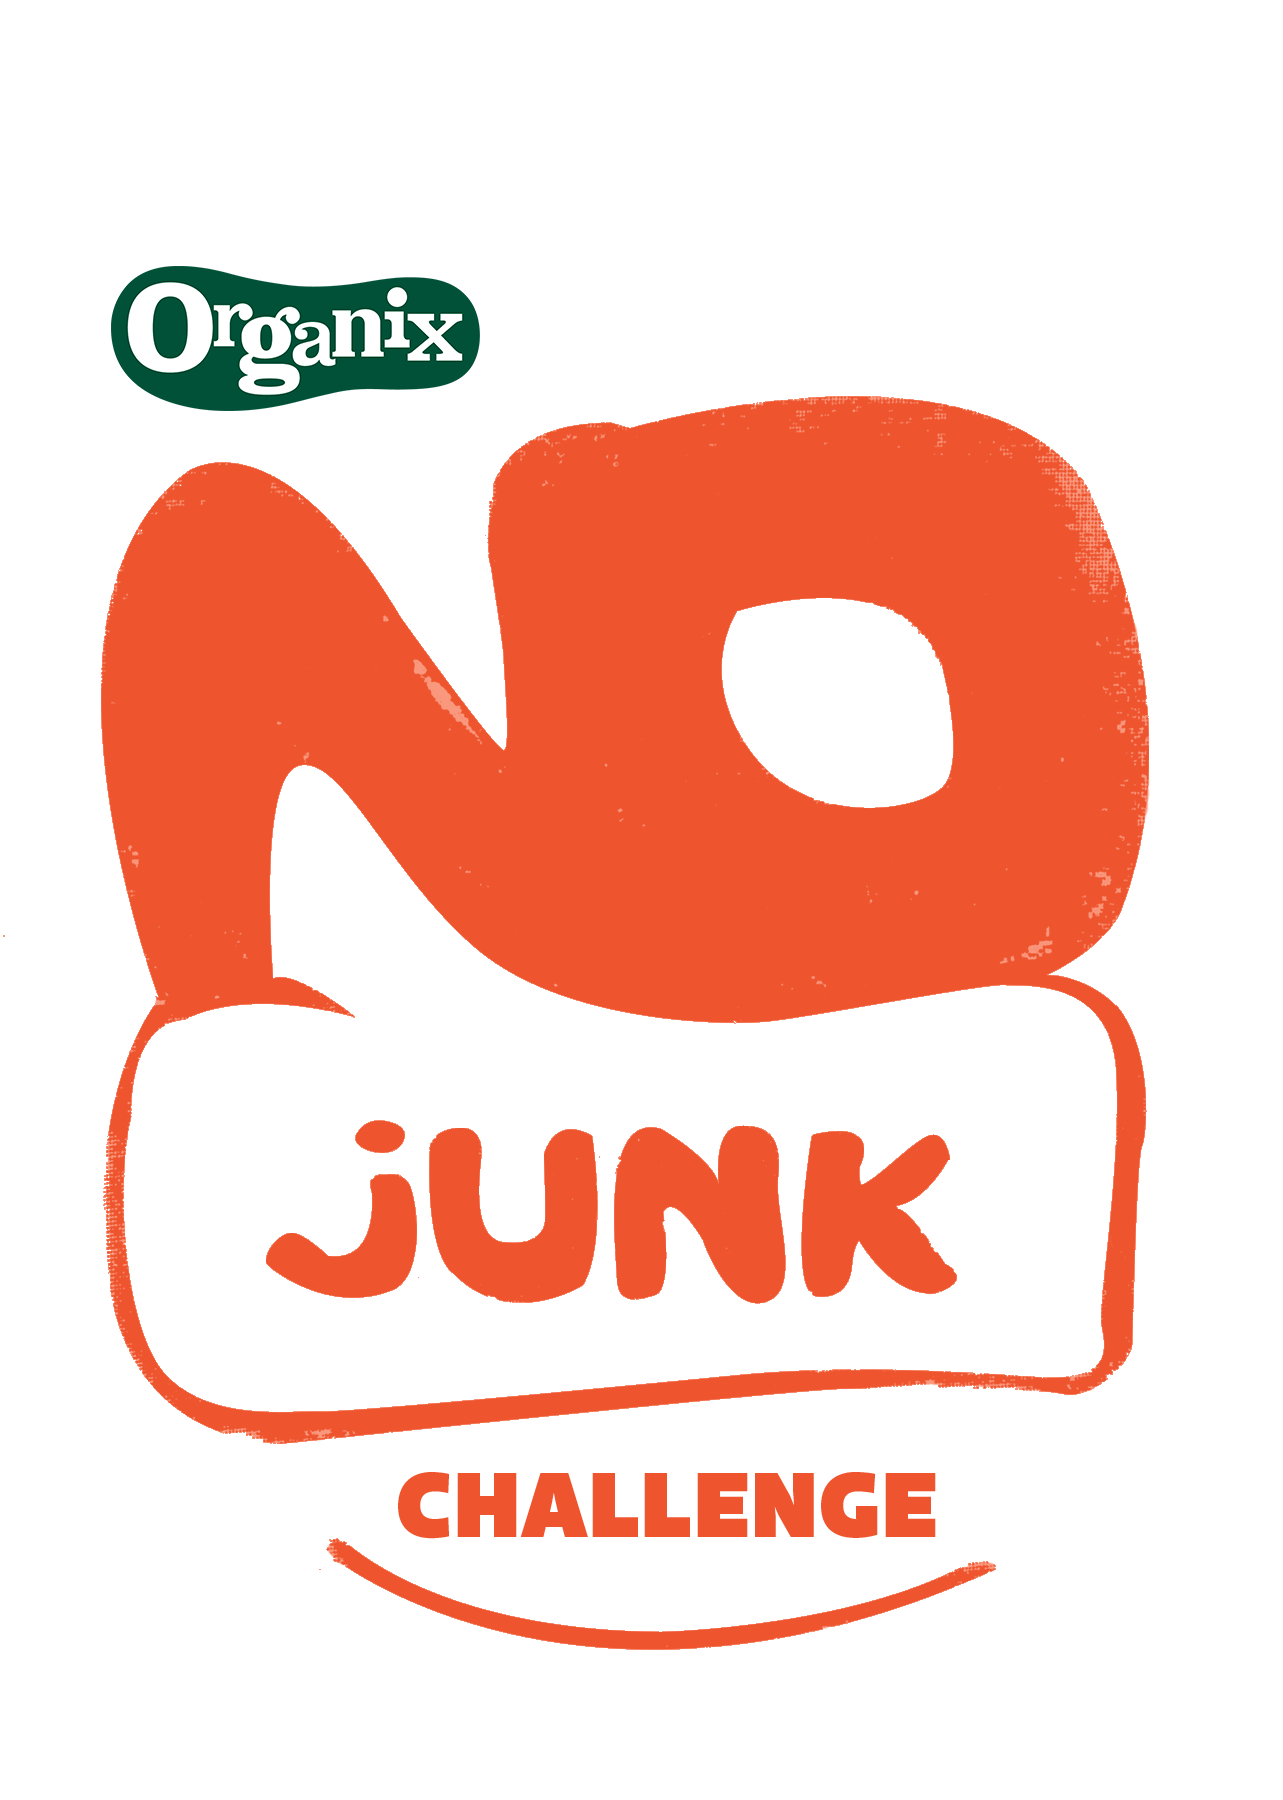 The Organix No Junk Challenge Who Is Making Our Children Fat